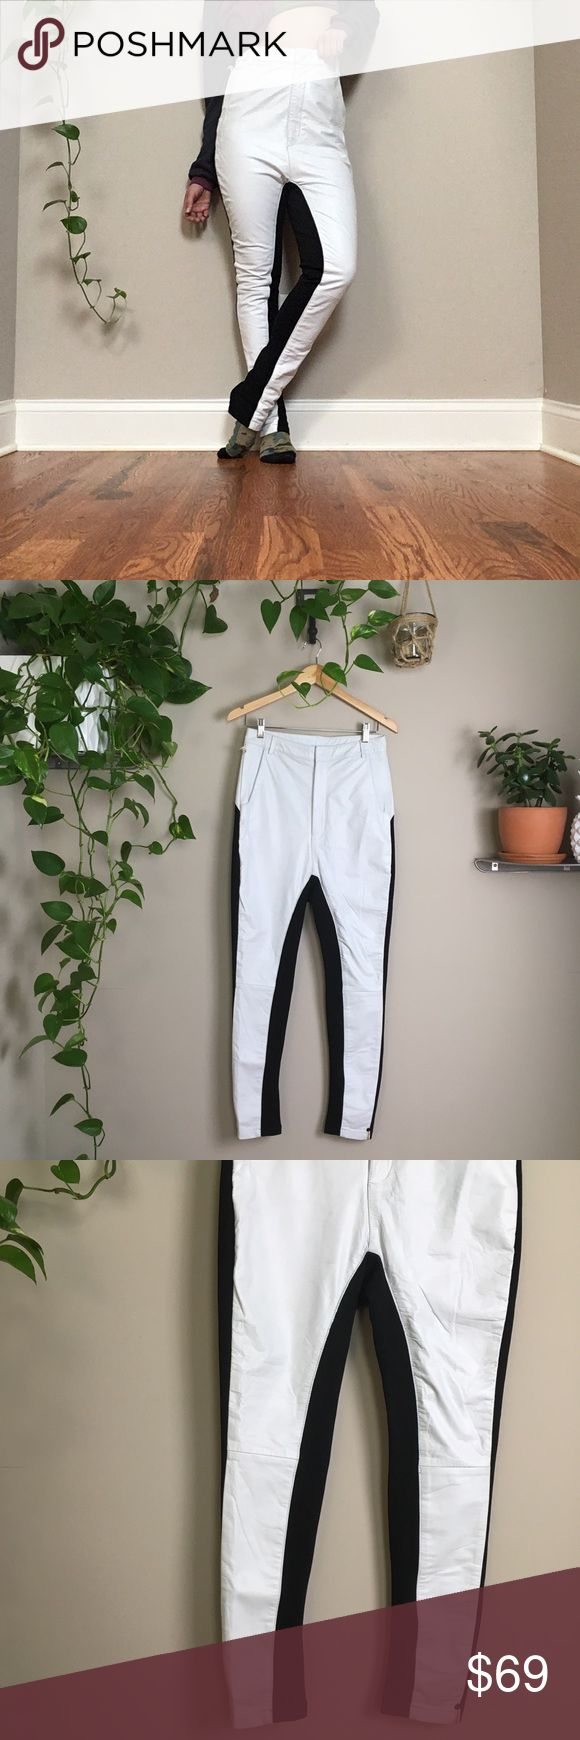 NWT✨One Teaspoon Bowie pants New with tags, One Teaspoon Bowie leather pants.  White leather pants with black stretch ponte fabric contrast. Front zipper fly closure. Top portion of pant is lined for comfort. Black ponte fabric forms a contour design, which covers a large portion of the back of the pant. Although NWT, these aren't perfect; leather is a little worn/distressed looking and there are tiny tiny marks on top part of pants—pictures as accurate as possible    🤦🏻‍♀️No trades…